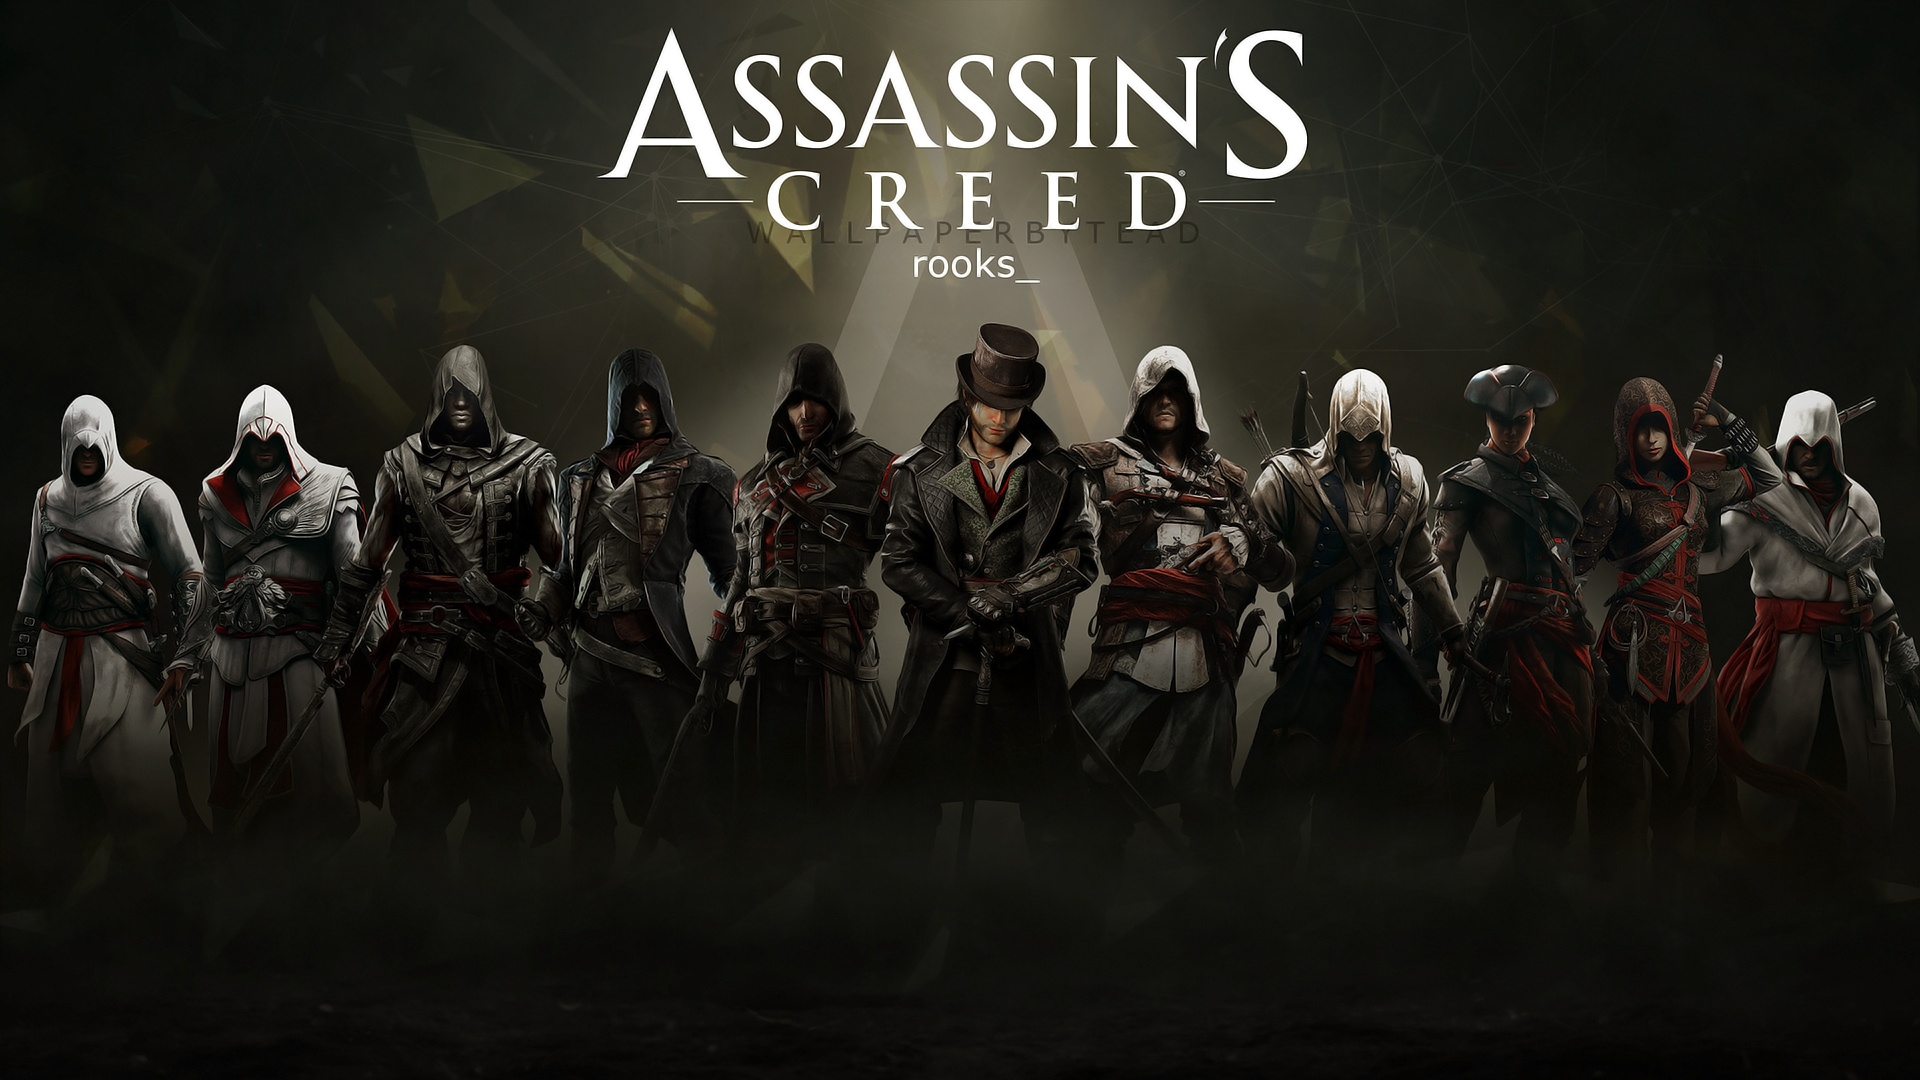 Assassins Creed Syndicate HD wallpapers download 1920x1080